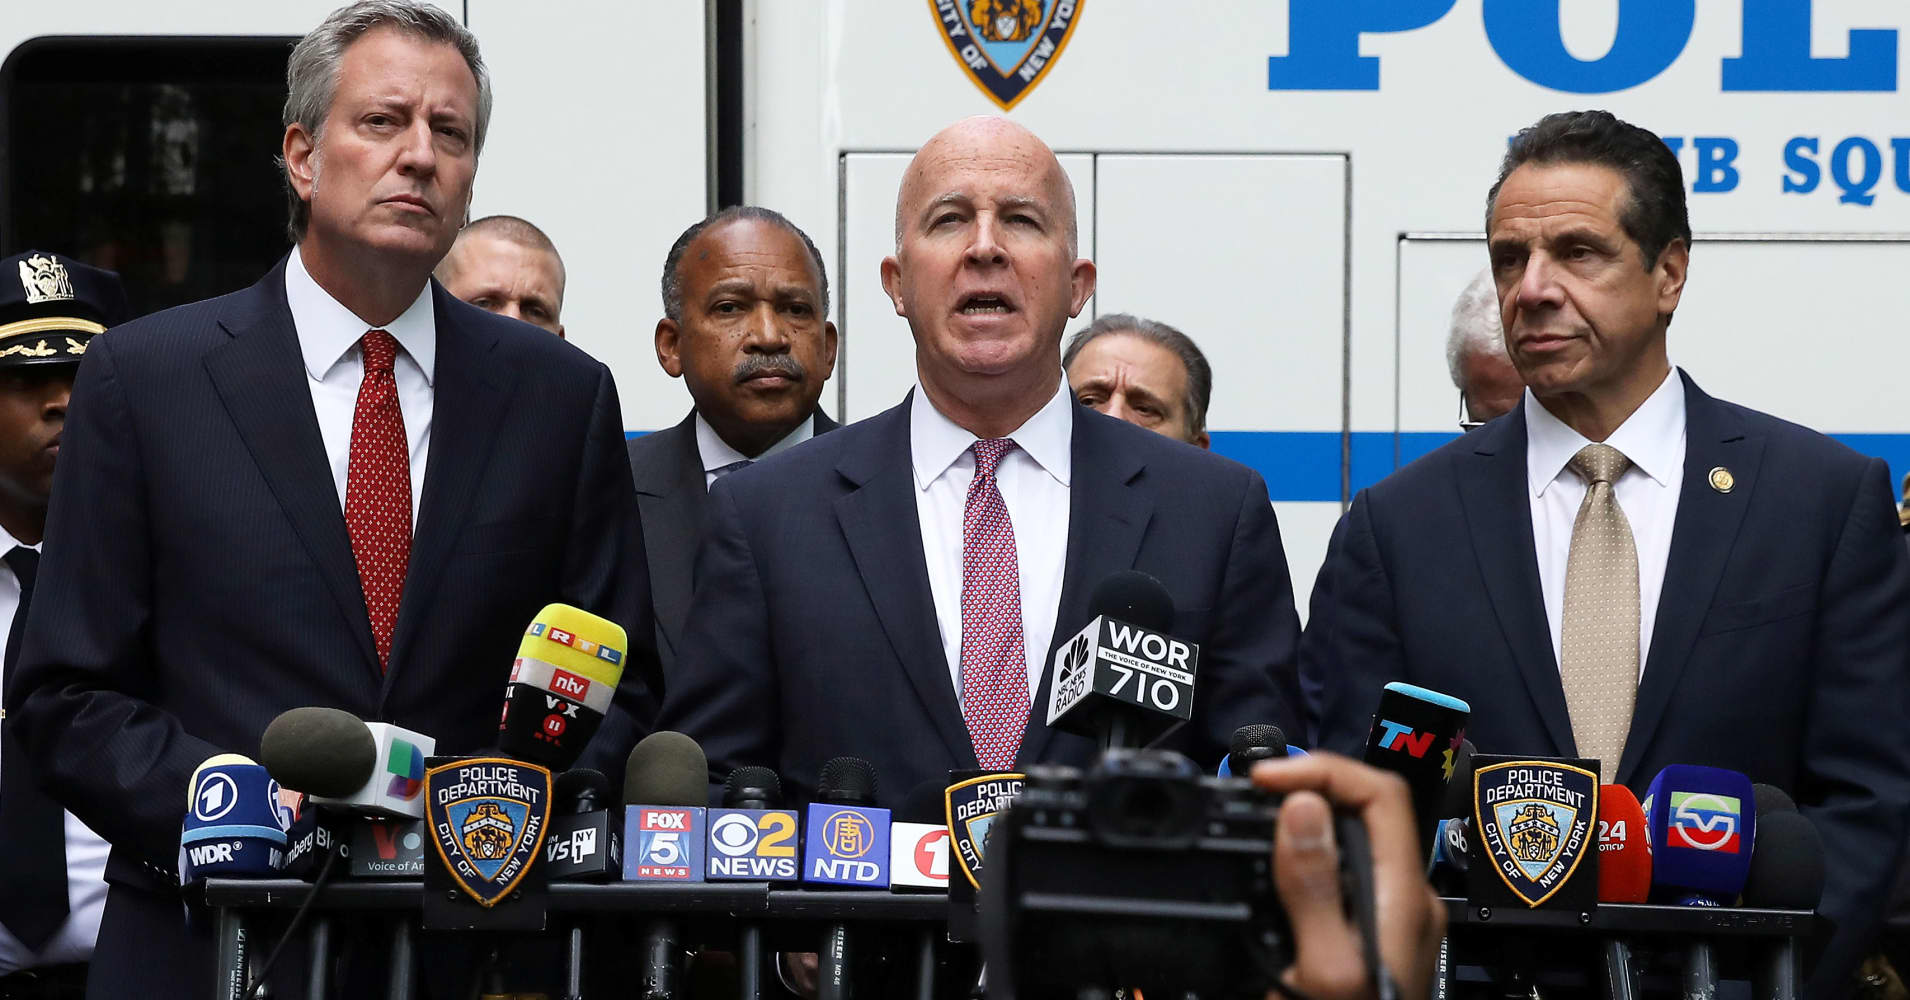 NYC mayor calls live explosive device sent to CNN an 'act of terror'